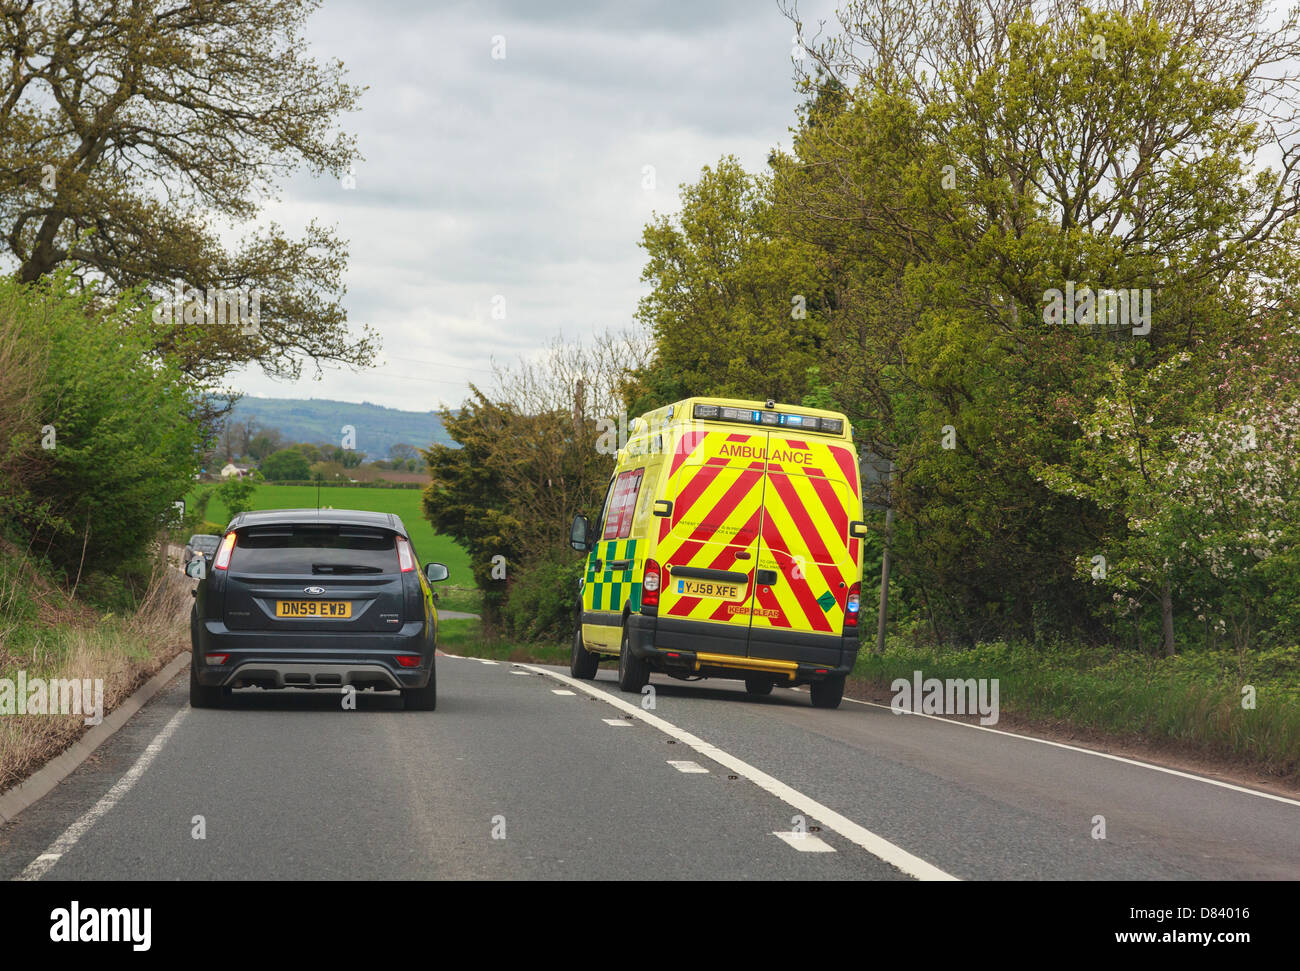 View through a windscreen of an ambulance with blue lights flashing rushing to an emergency overtaking a car along - Stock Image